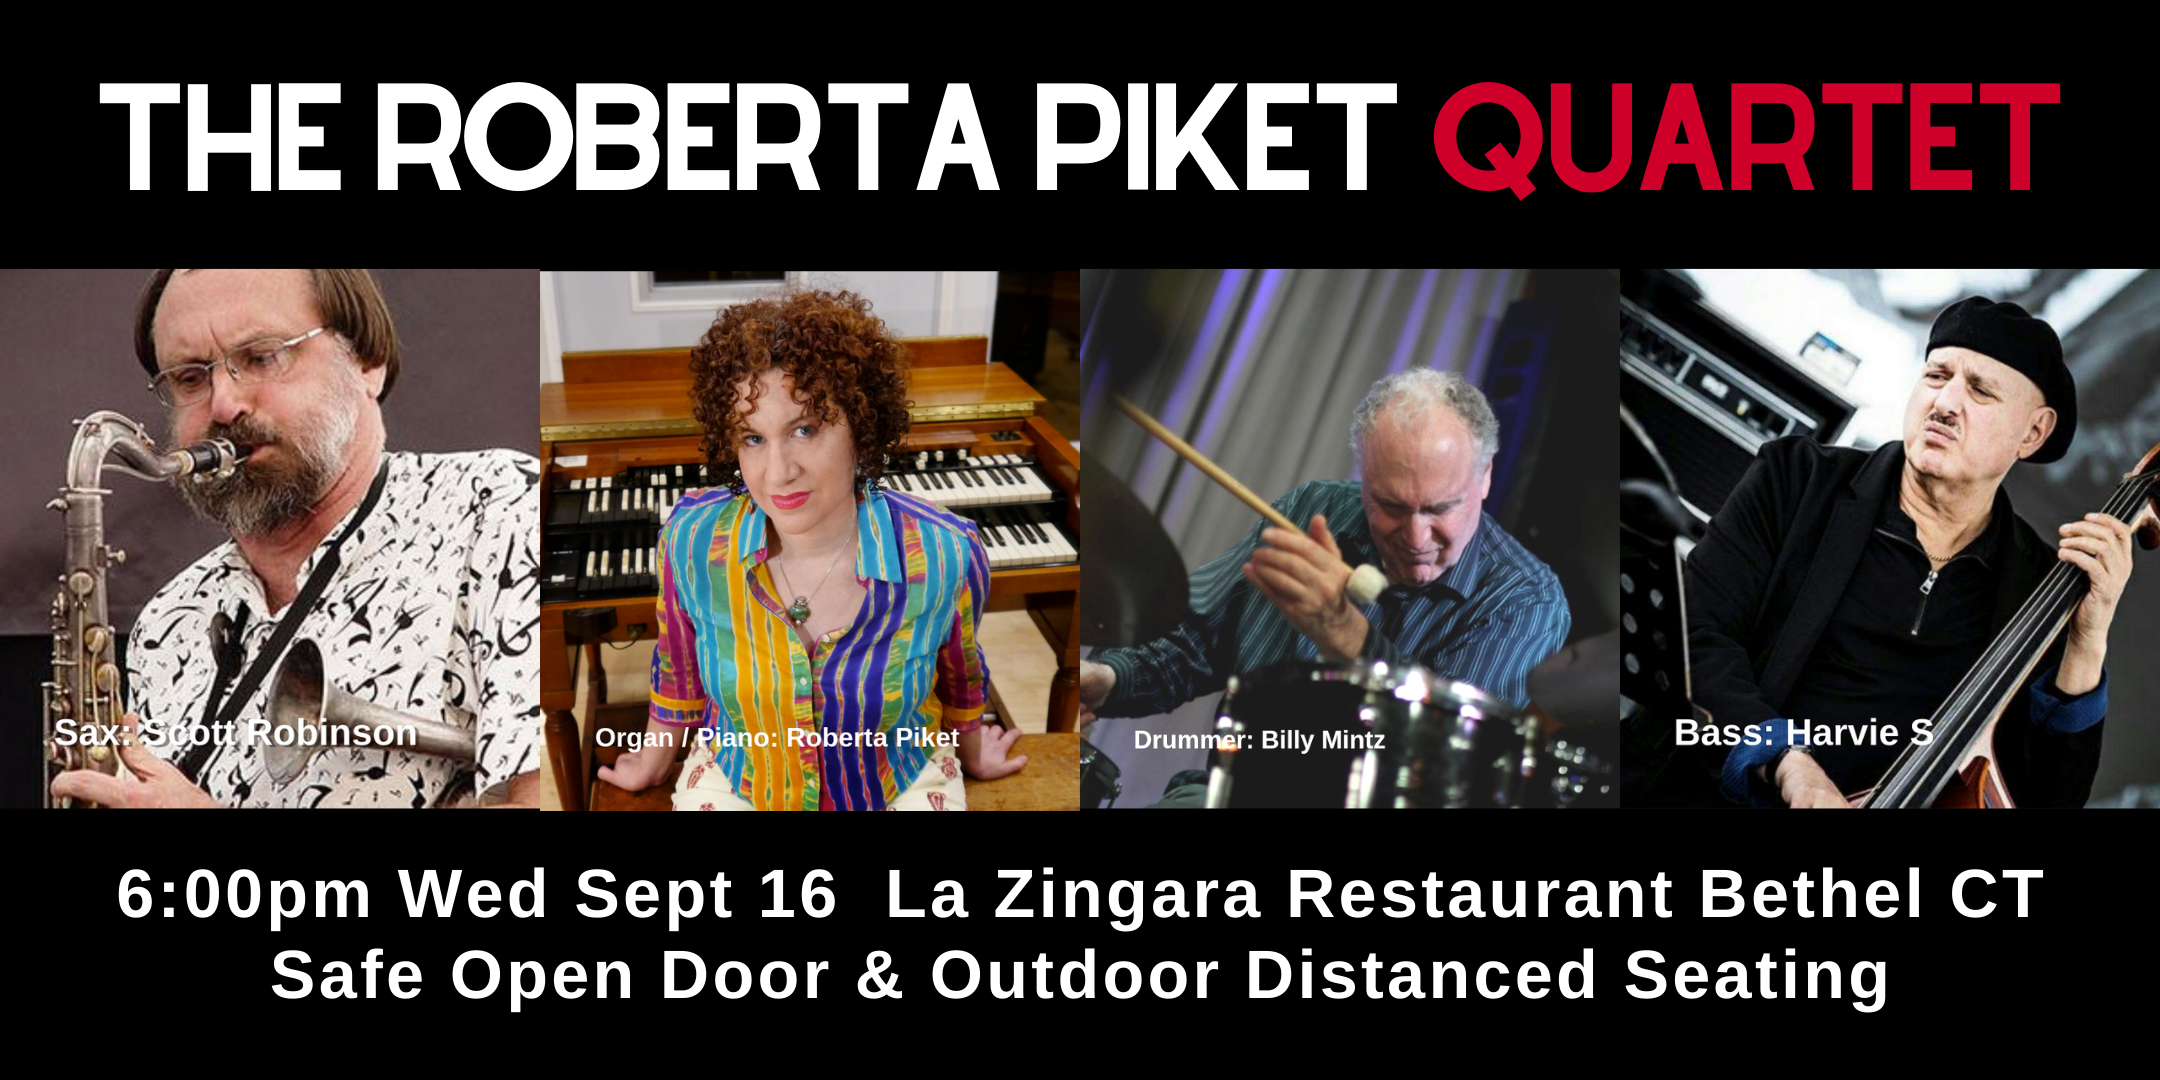 The Roberta Piket Quartet  JazZ  Returns To La Zingara 6pm Wed Sept 16